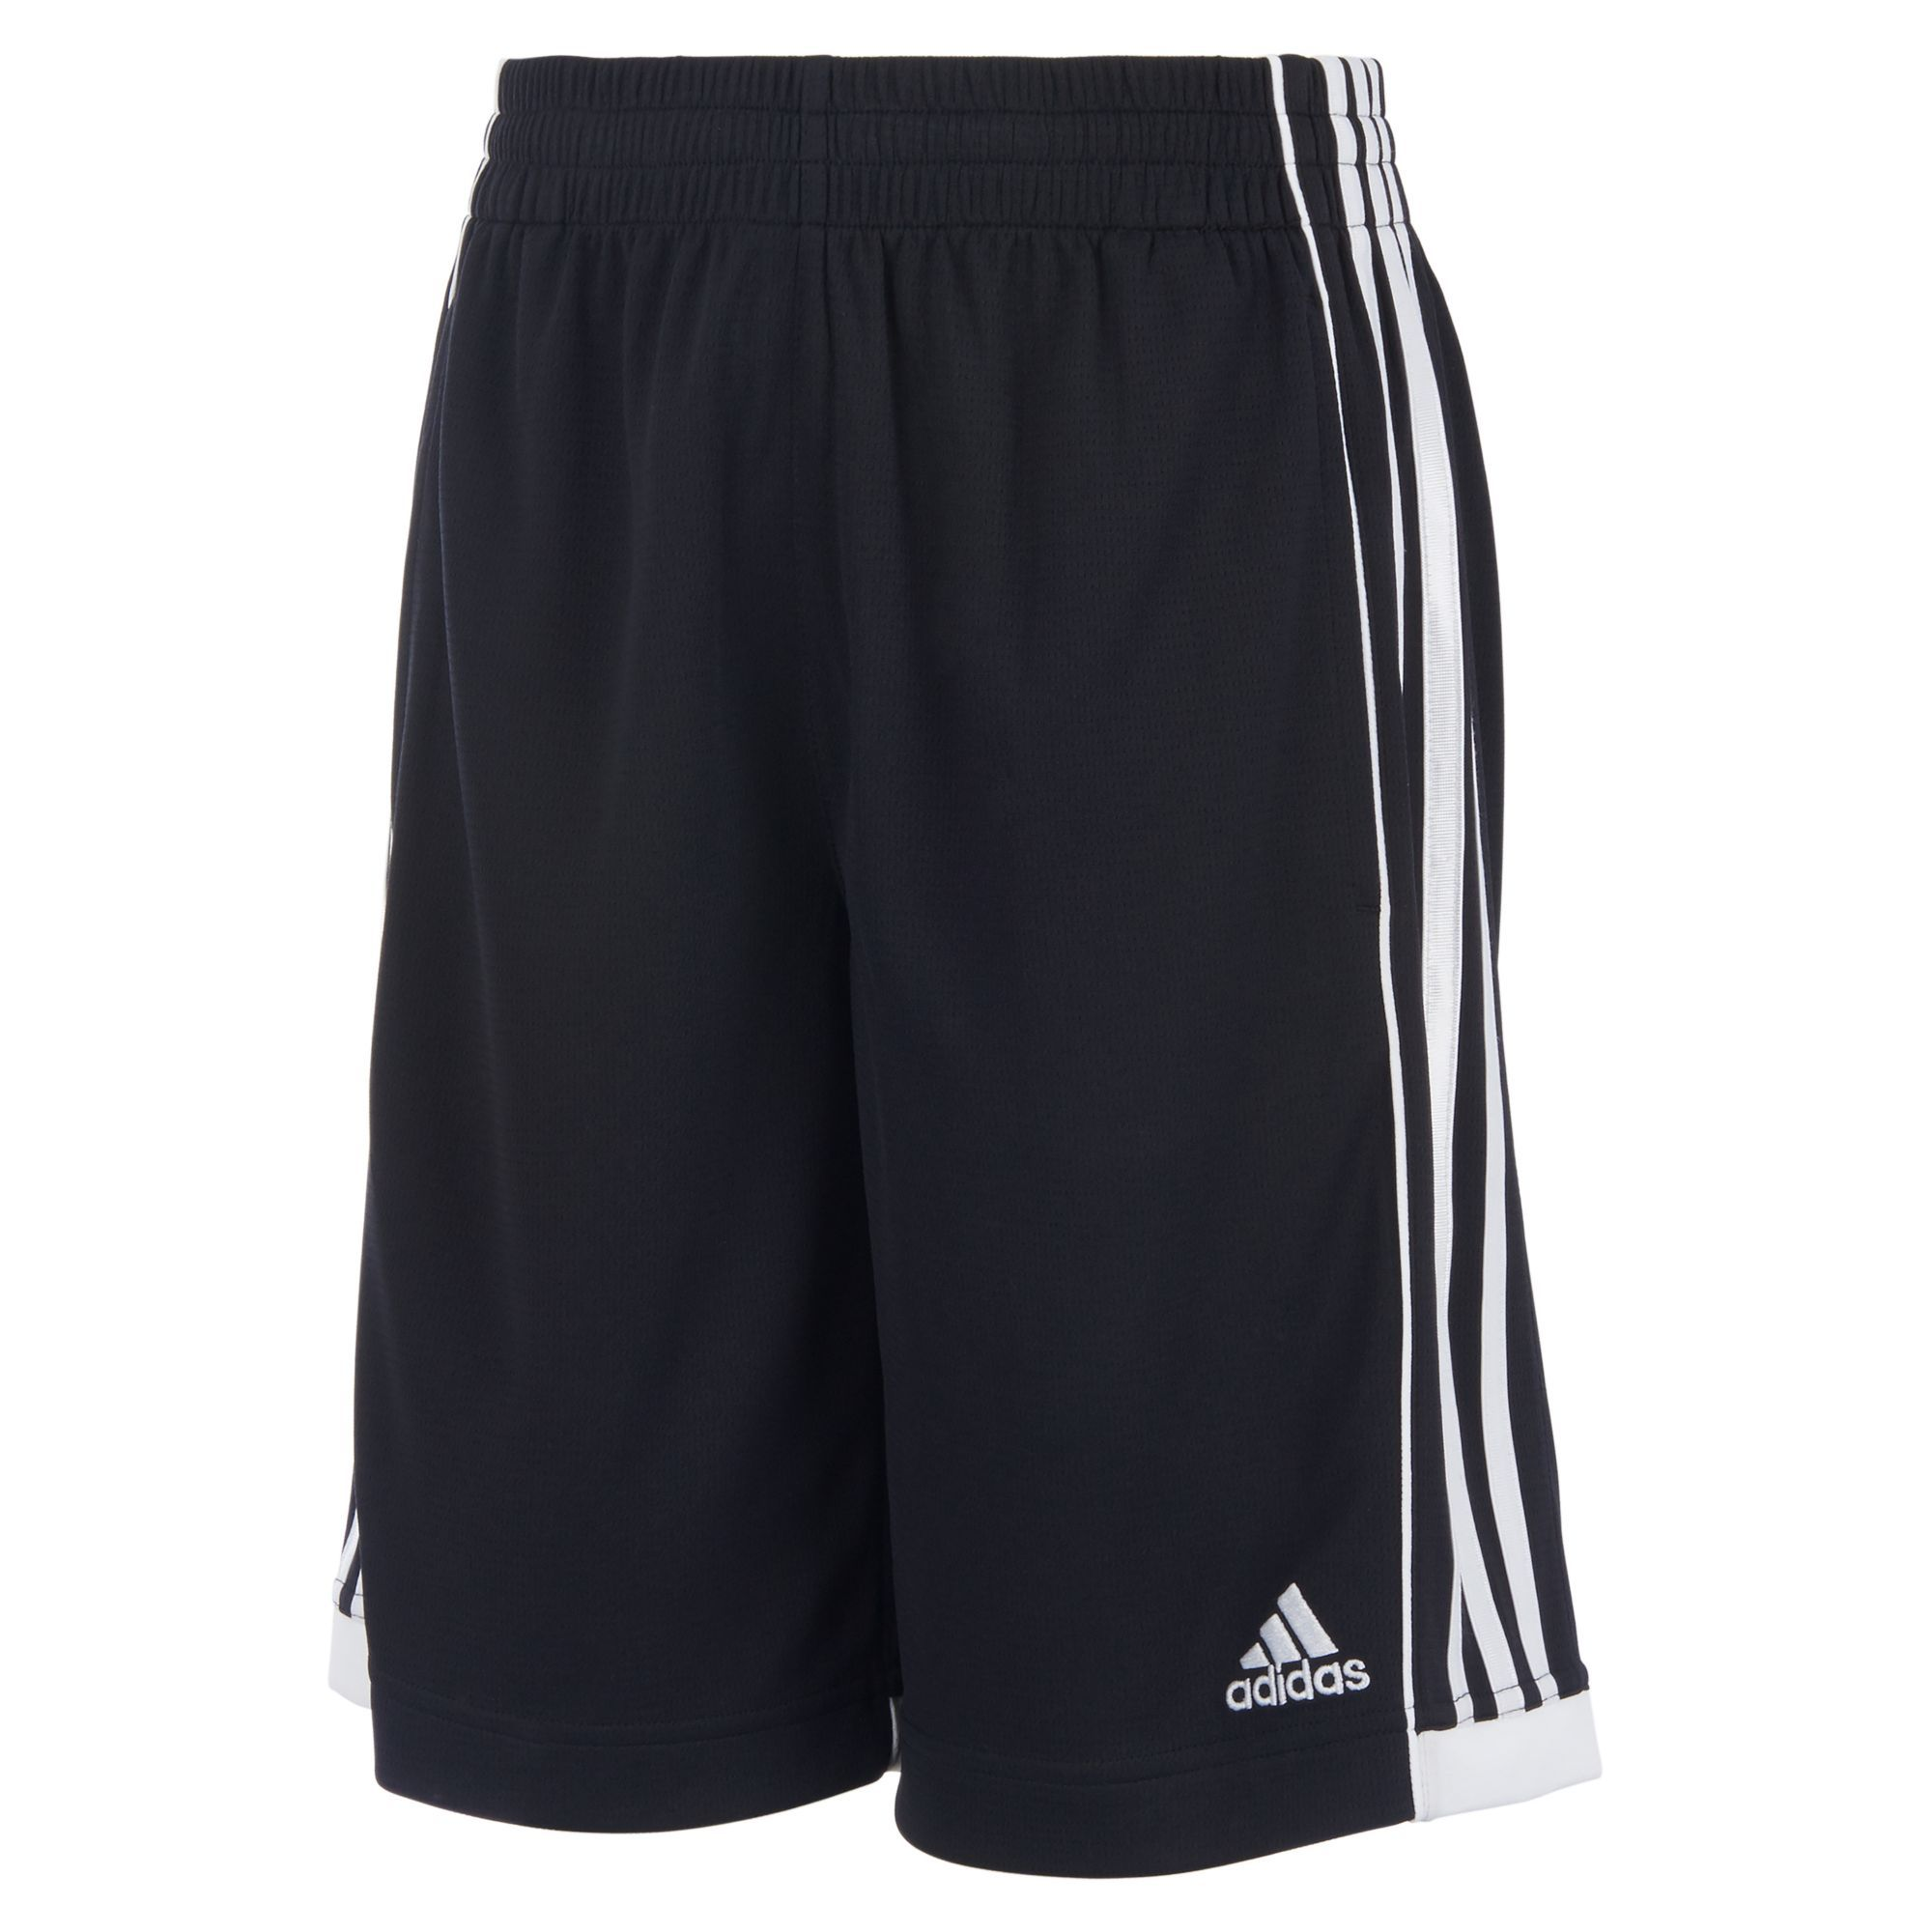 b5cfcc670d adidas Boys' Speed 18 Shorts in 2019 | Products | Adidas basketball ...